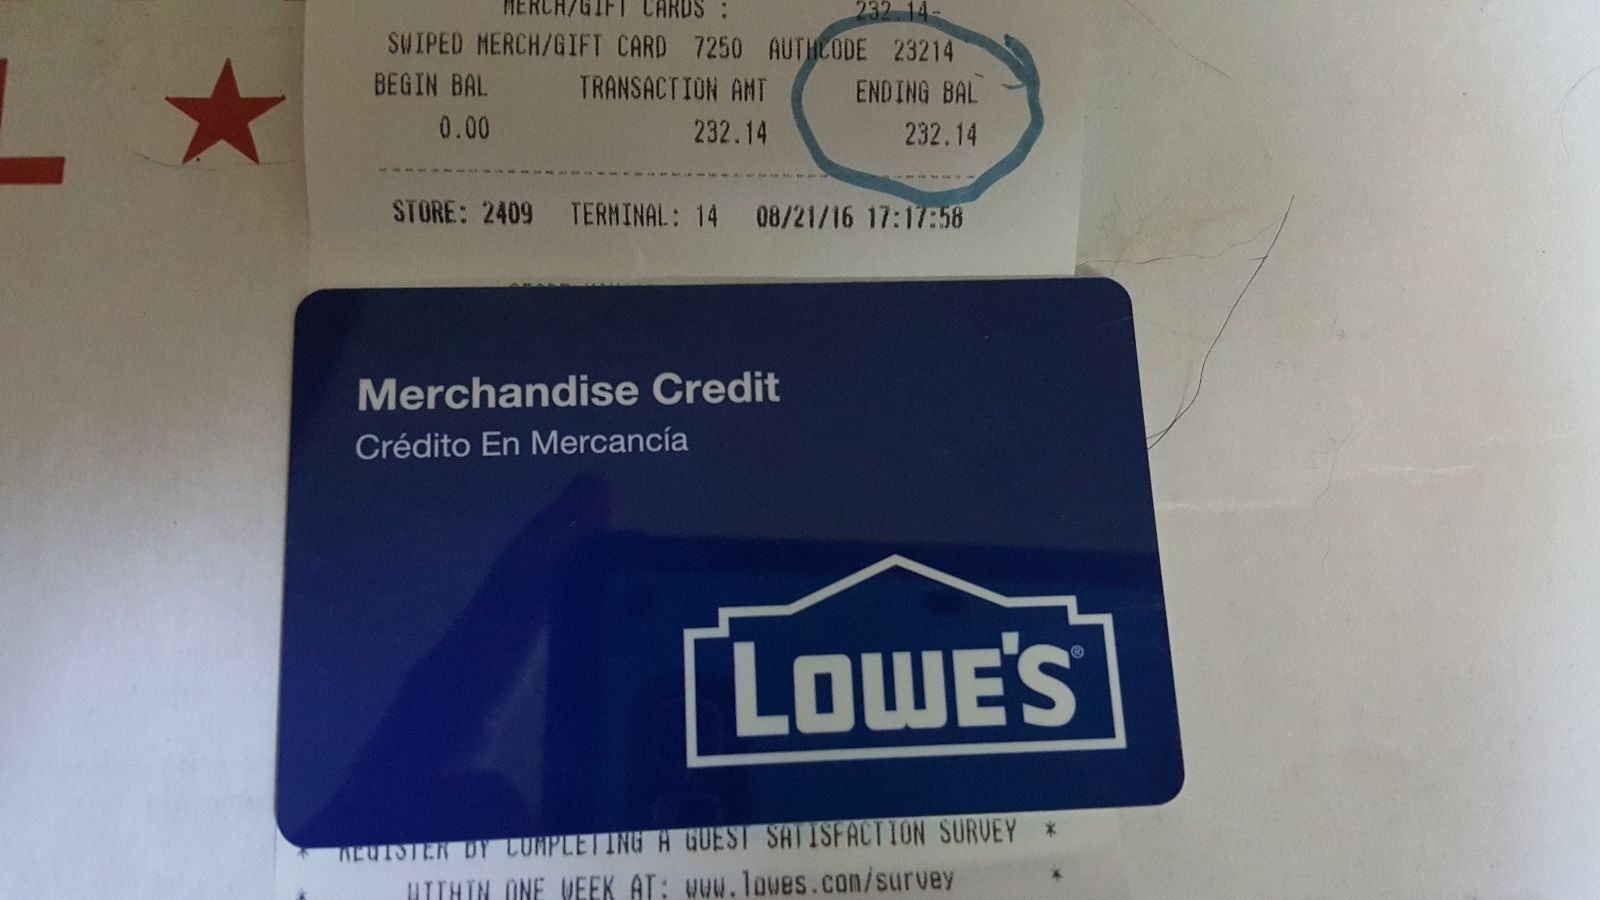 $232.14 LOWES GIFT CARD MERCHANDISE CREDIT TWO HUNDRED THIRTY TWO DOLLARS  https://t.co/iCrvlb4zrS https://t.co/ojCvCQDBDO